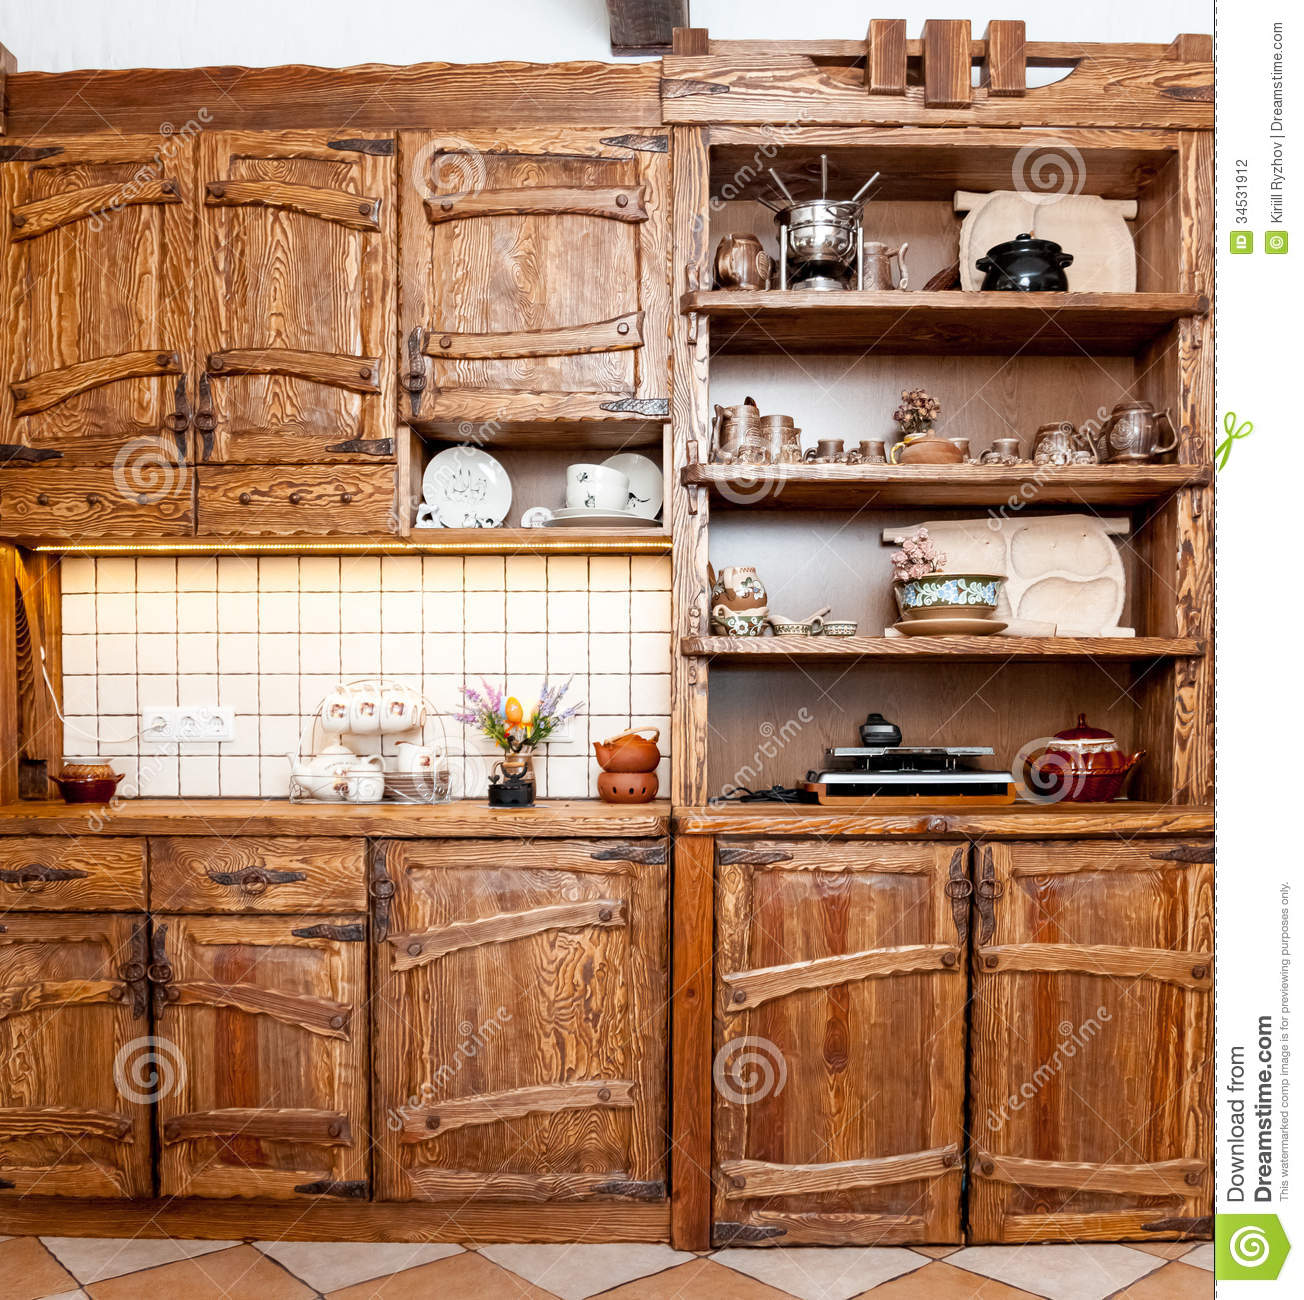 Furniture For Kitchen In Country Style Stock Photo Image